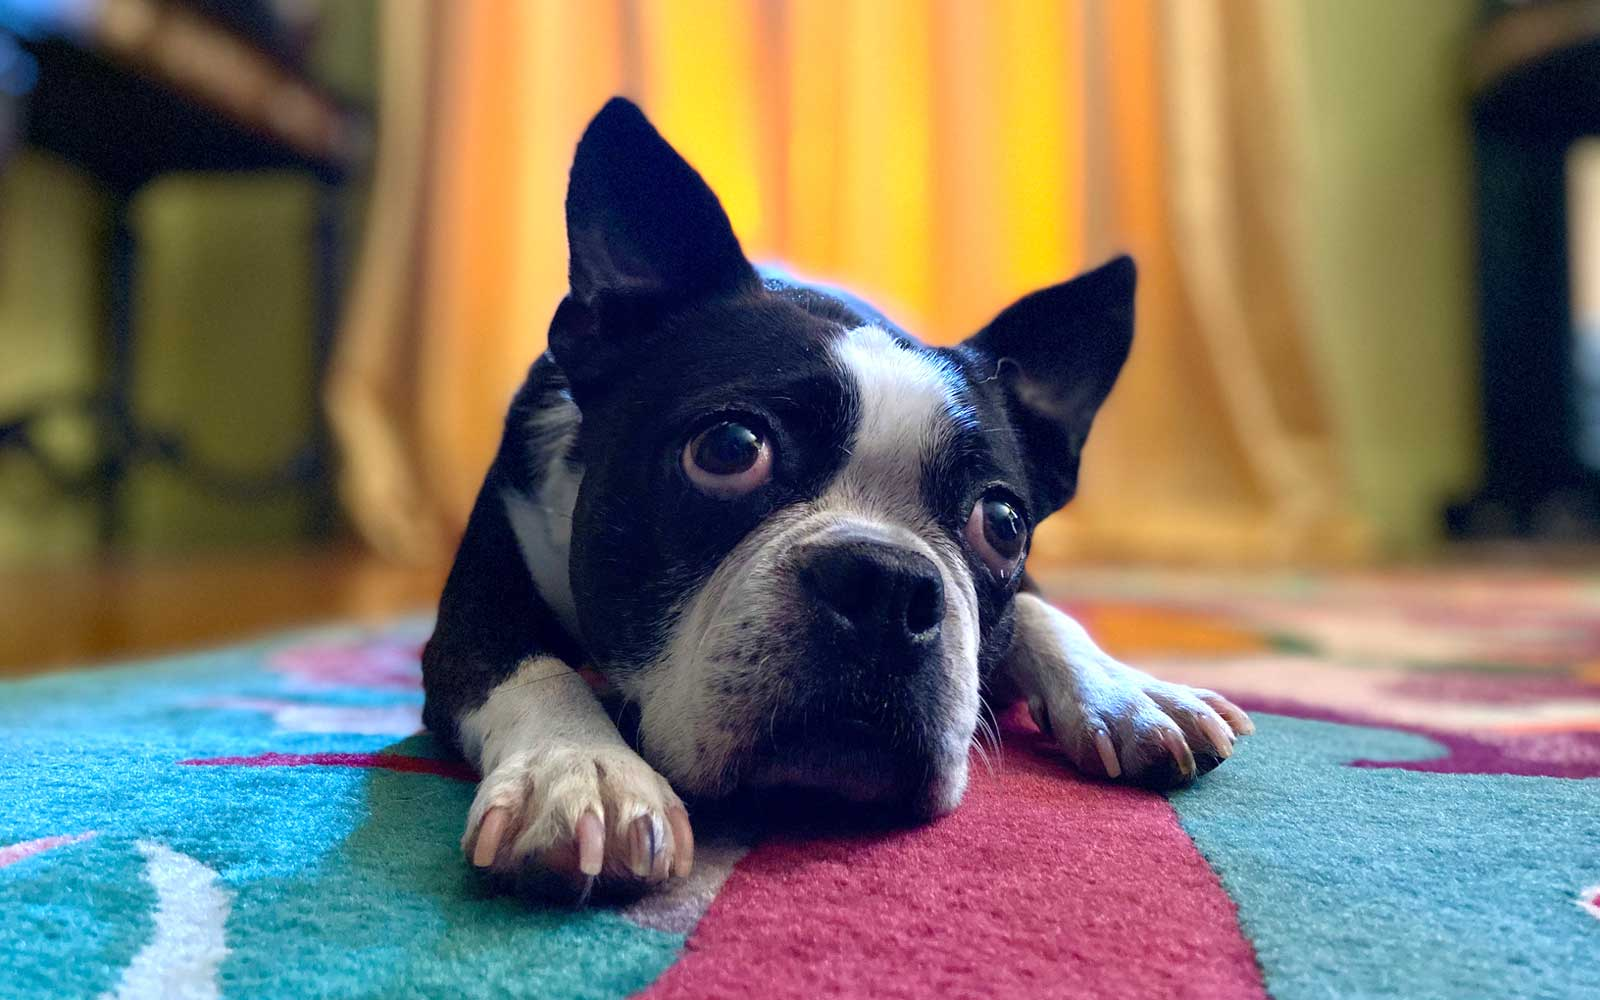 Apple iPhone 11 Pet Portrait Mode